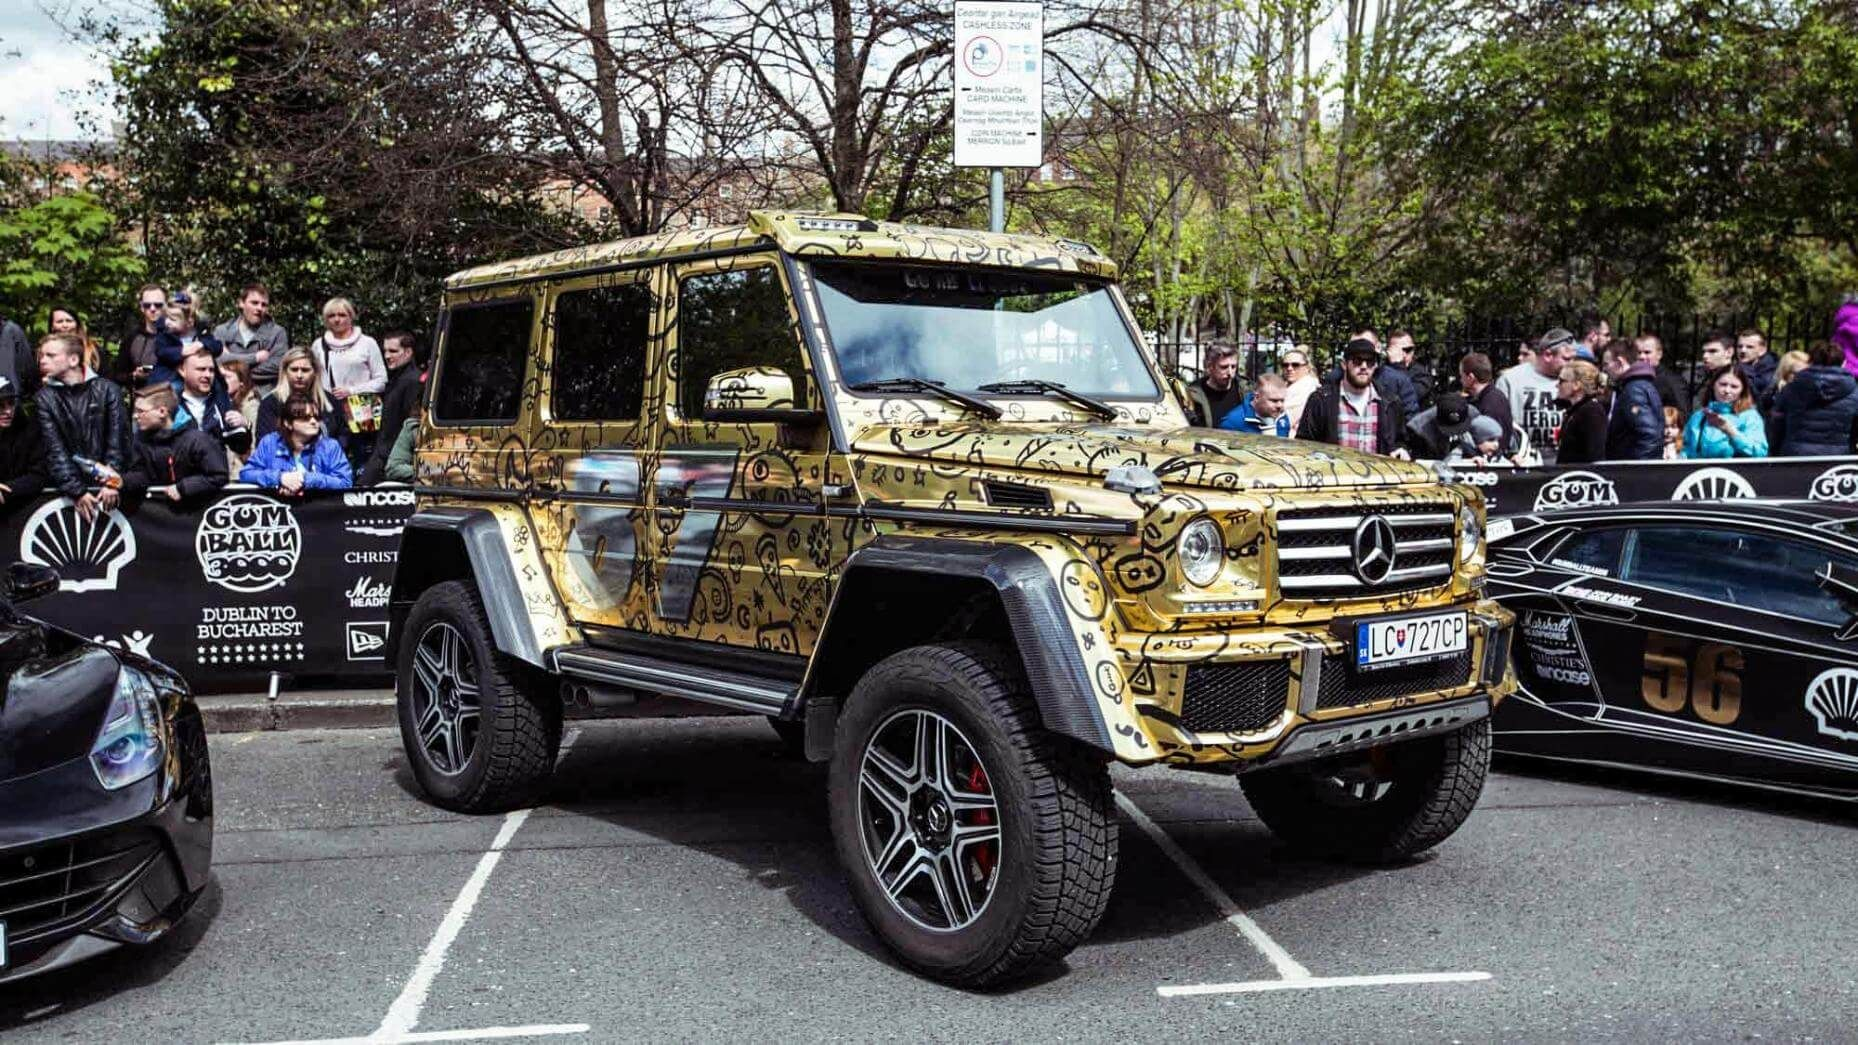 Mercedes Classe G Gumball 3000 2016 Gumball course